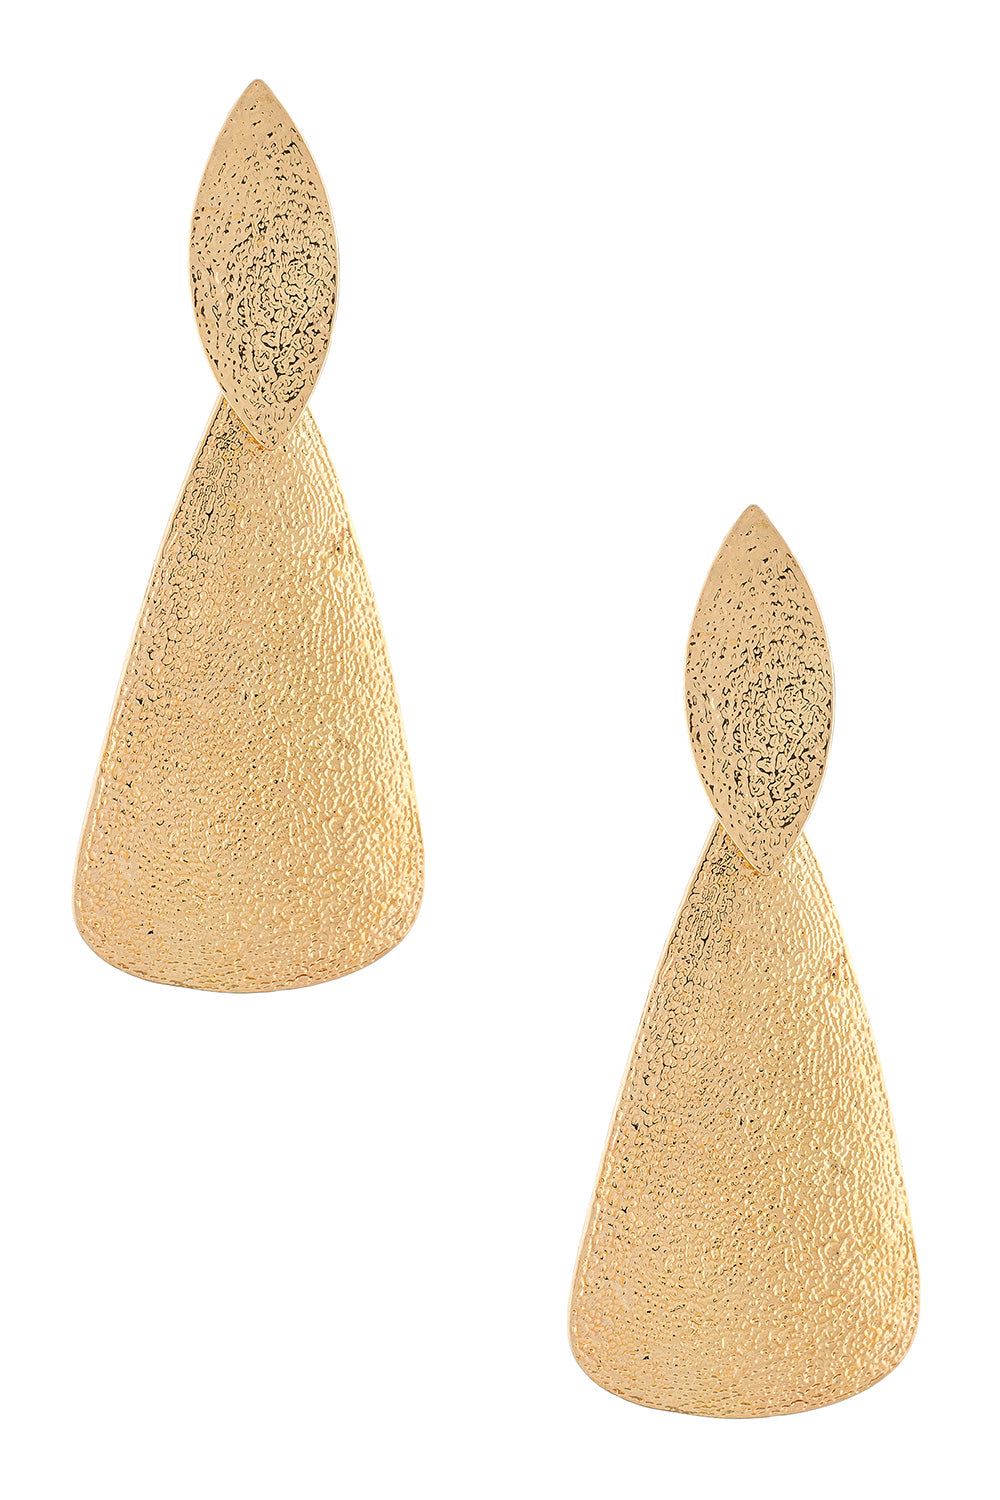 Type 3 Golden Rule Earrings